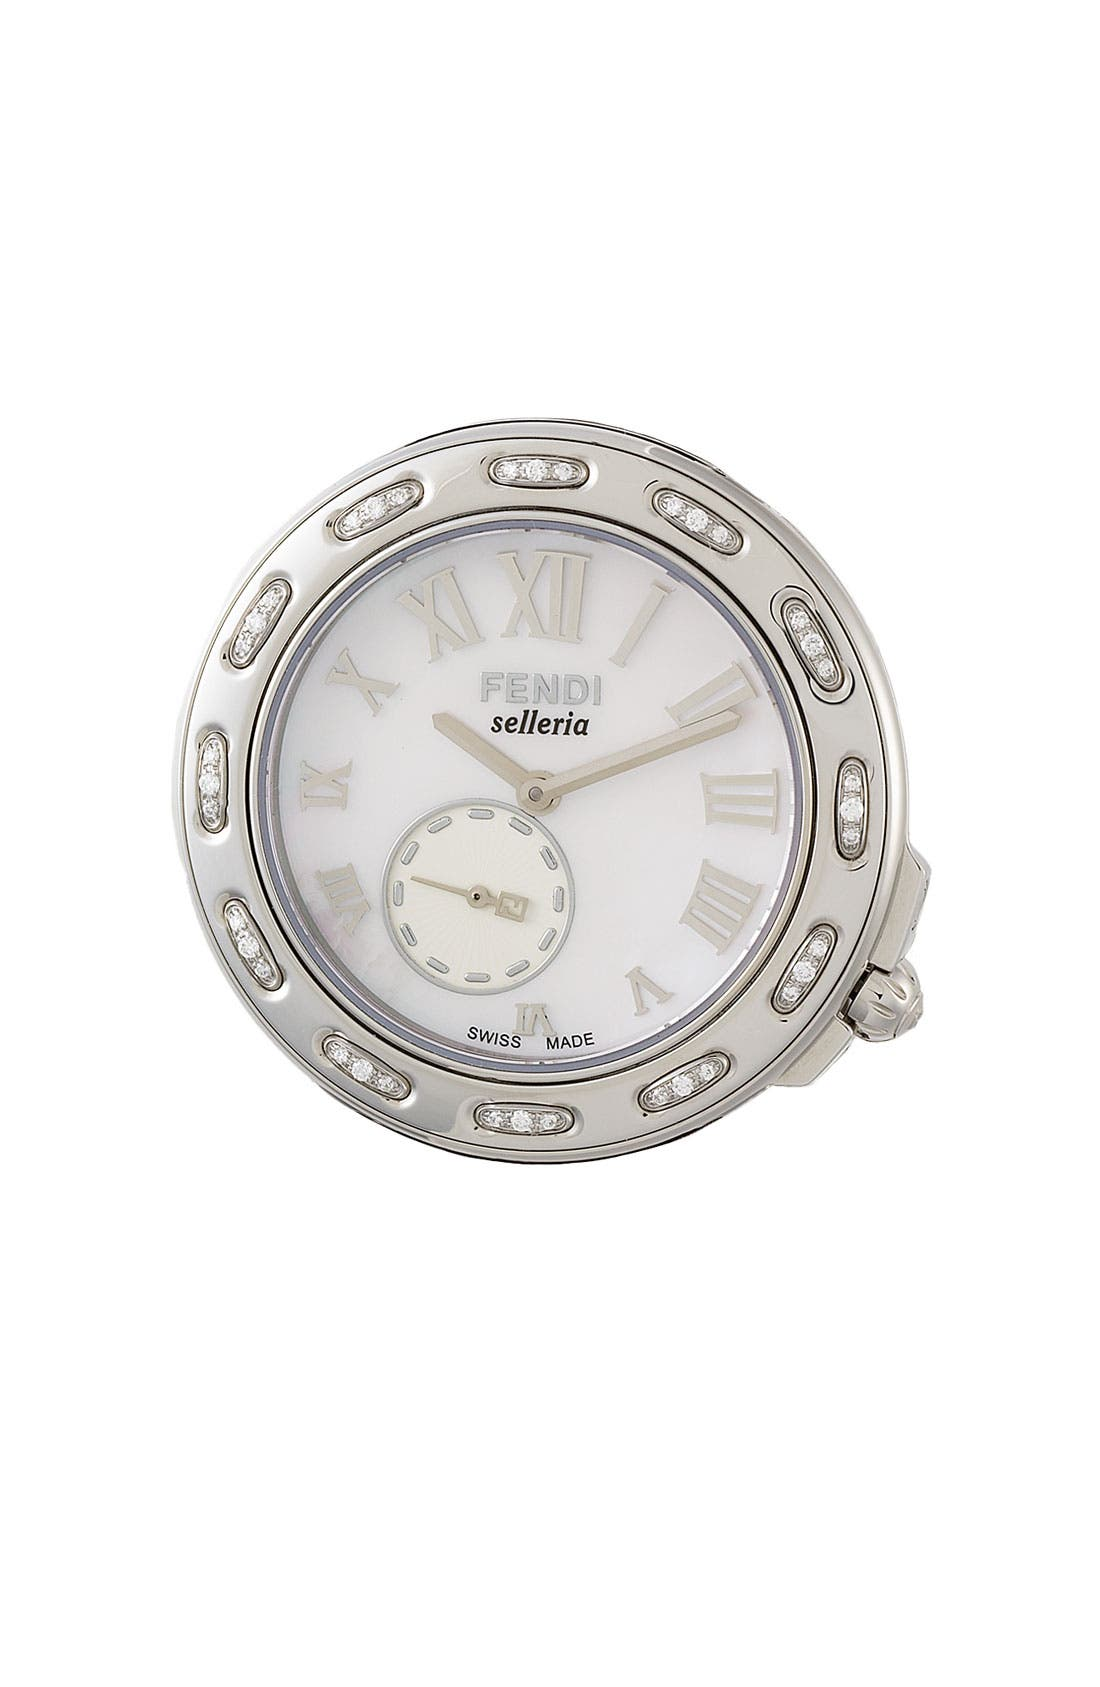 Main Image - Fendi 'Selleria' Diamond Watch Case